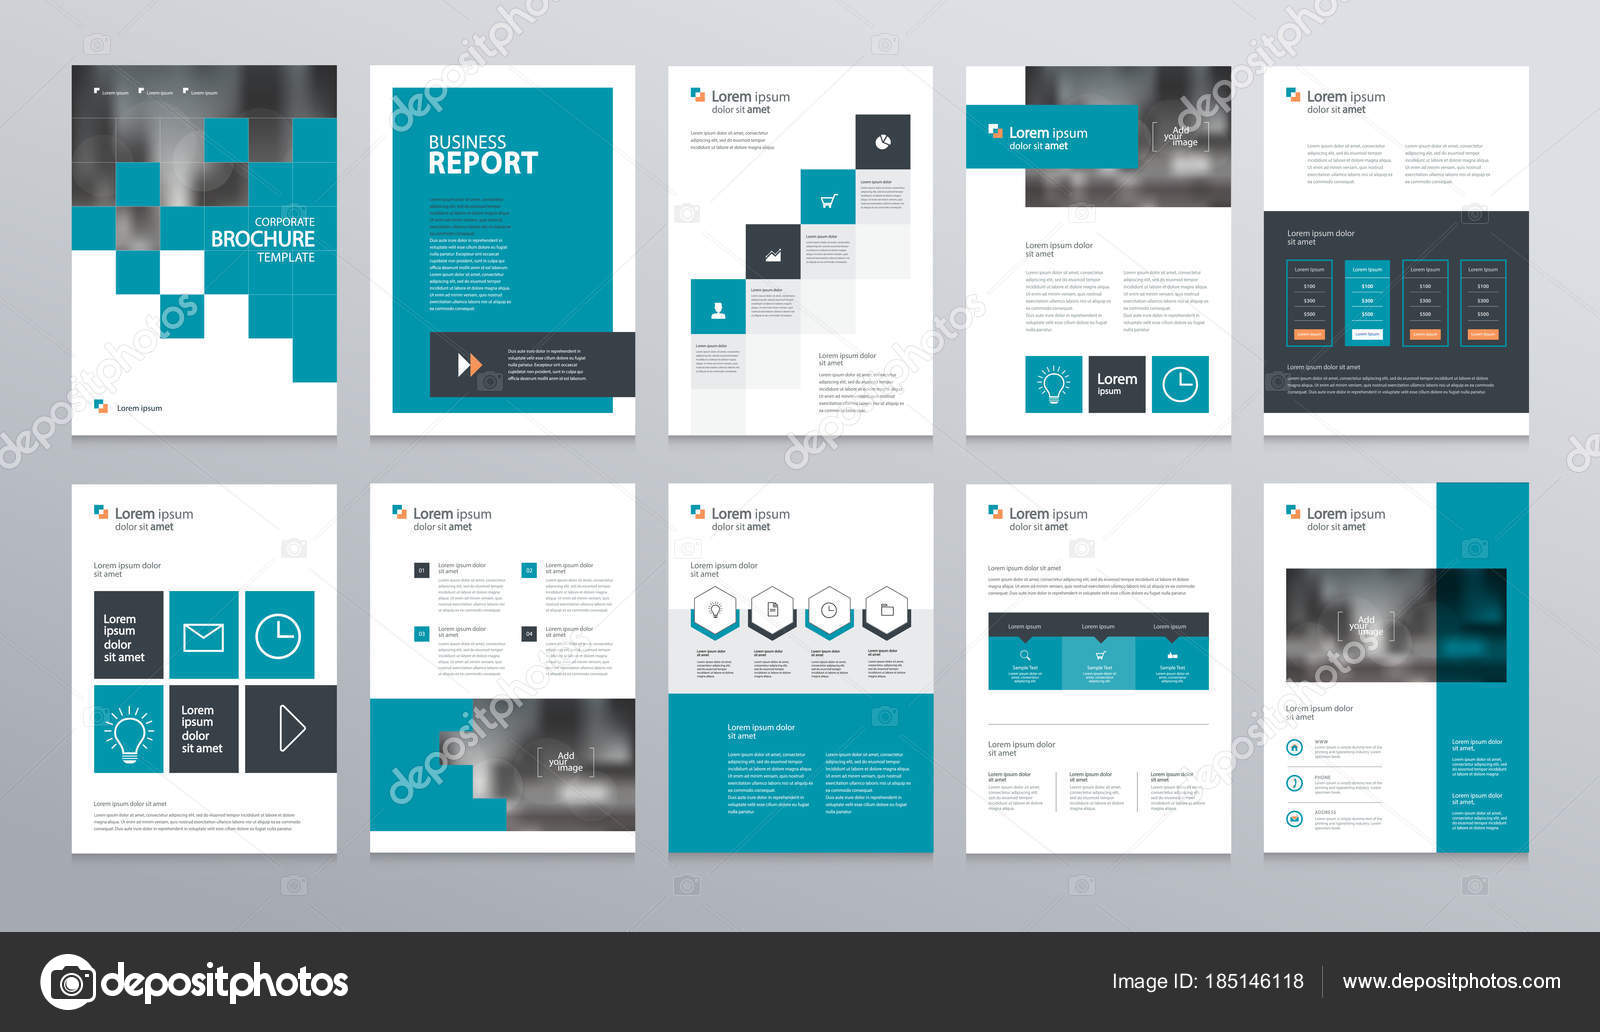 Template layout design cover page company profile annual report template layout design cover page company profile annual report brochures stock vector cheaphphosting Choice Image